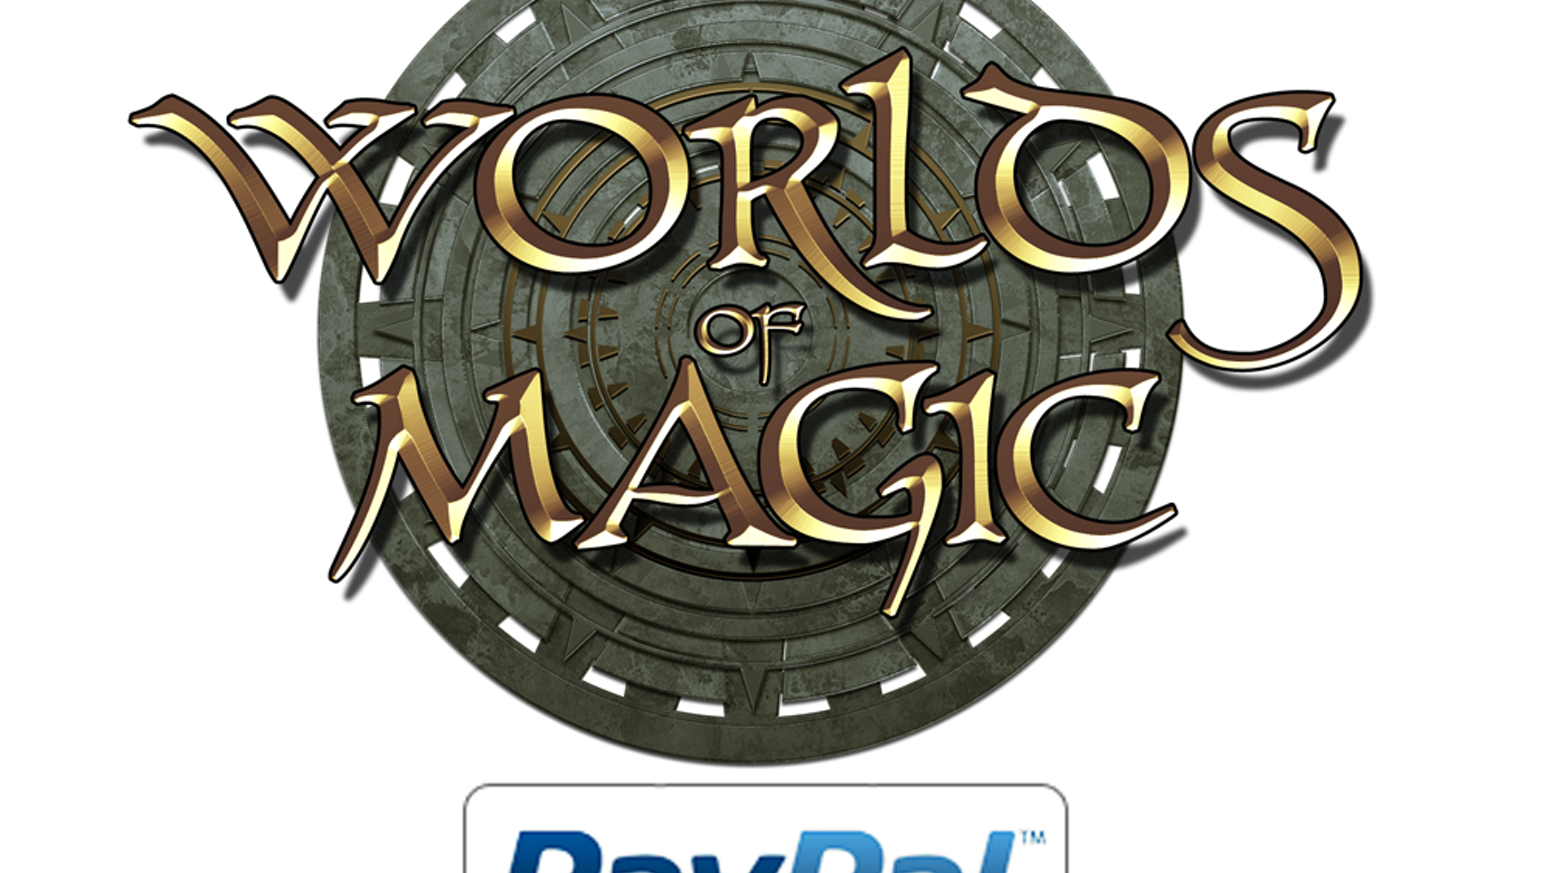 Worlds of Magic - A new classic 4X fantasy game by Wastelands